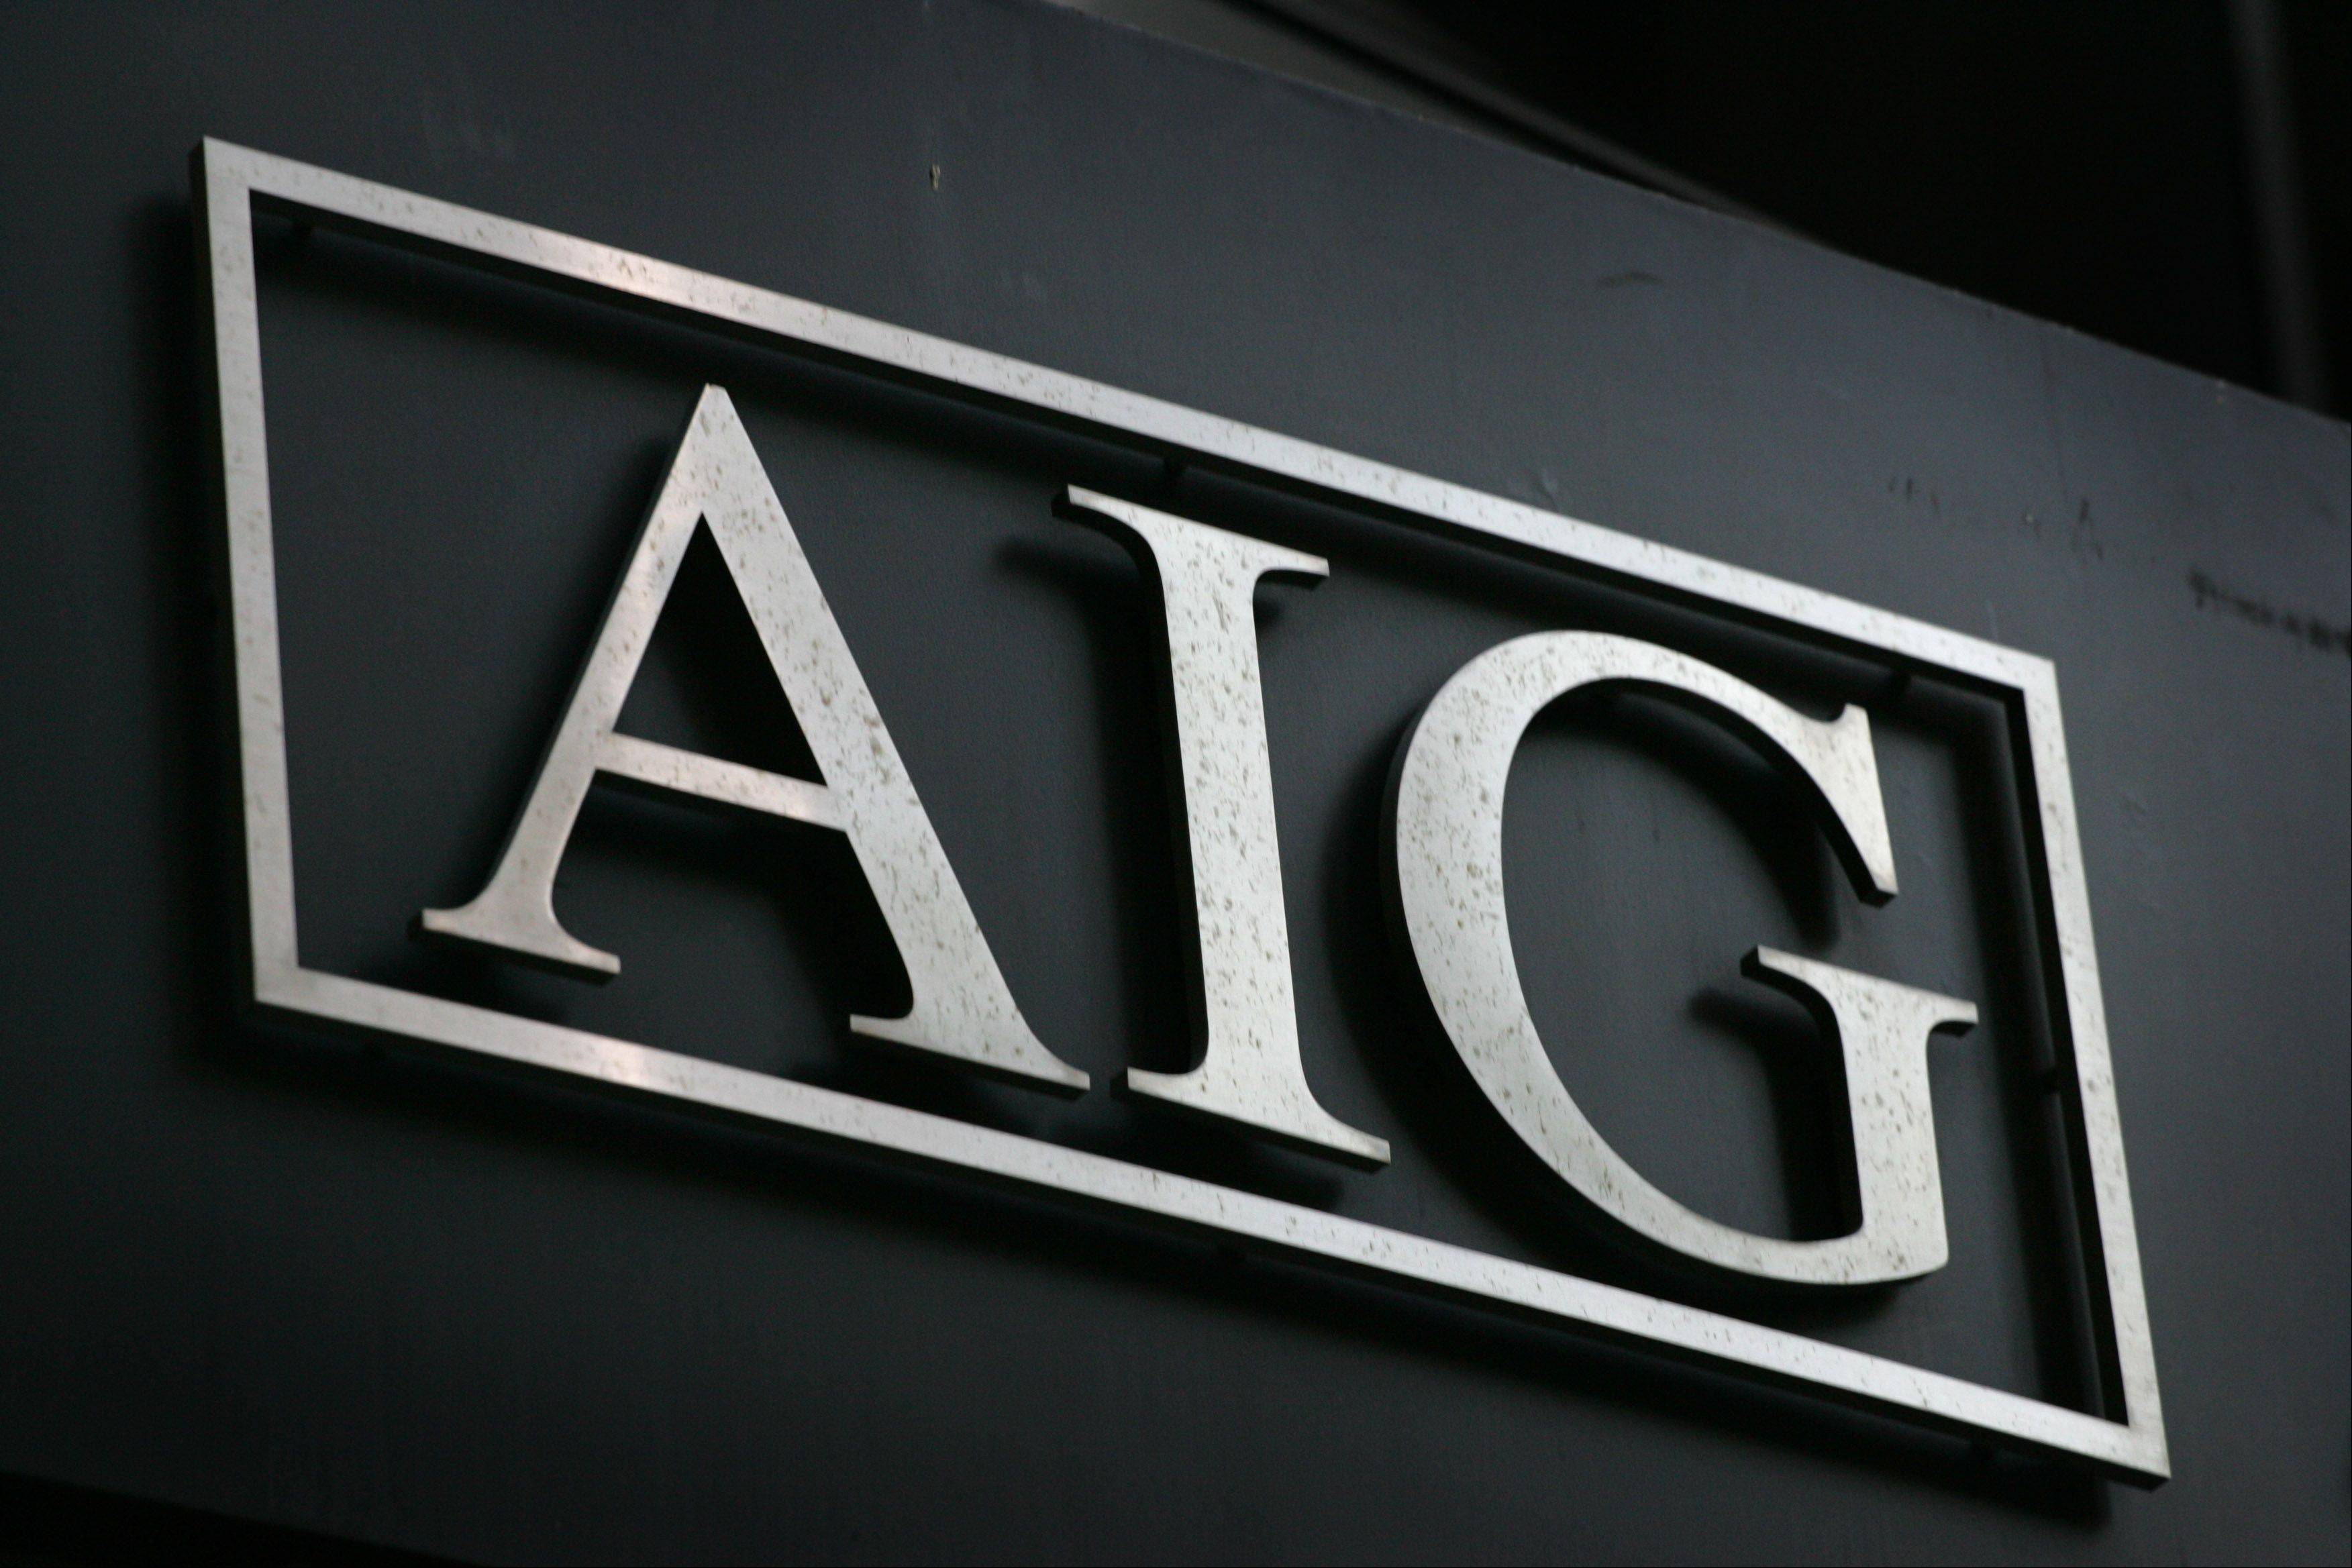 FILE - In this Sept. 17, 2008 file photo, the AIG logo is shown in New York. Bailed-out insurance conglomerate American International Group Inc. is taking a key step toward paying off a bailout that was at one point worth $182 billion _ the largest of the financial crisis. The company says in a public filing Wednesday, Dec. 8, 2010, that it will repay a loan from the Federal Reserve Bank of New York. (AP Photo/Mark Lennihan, File)